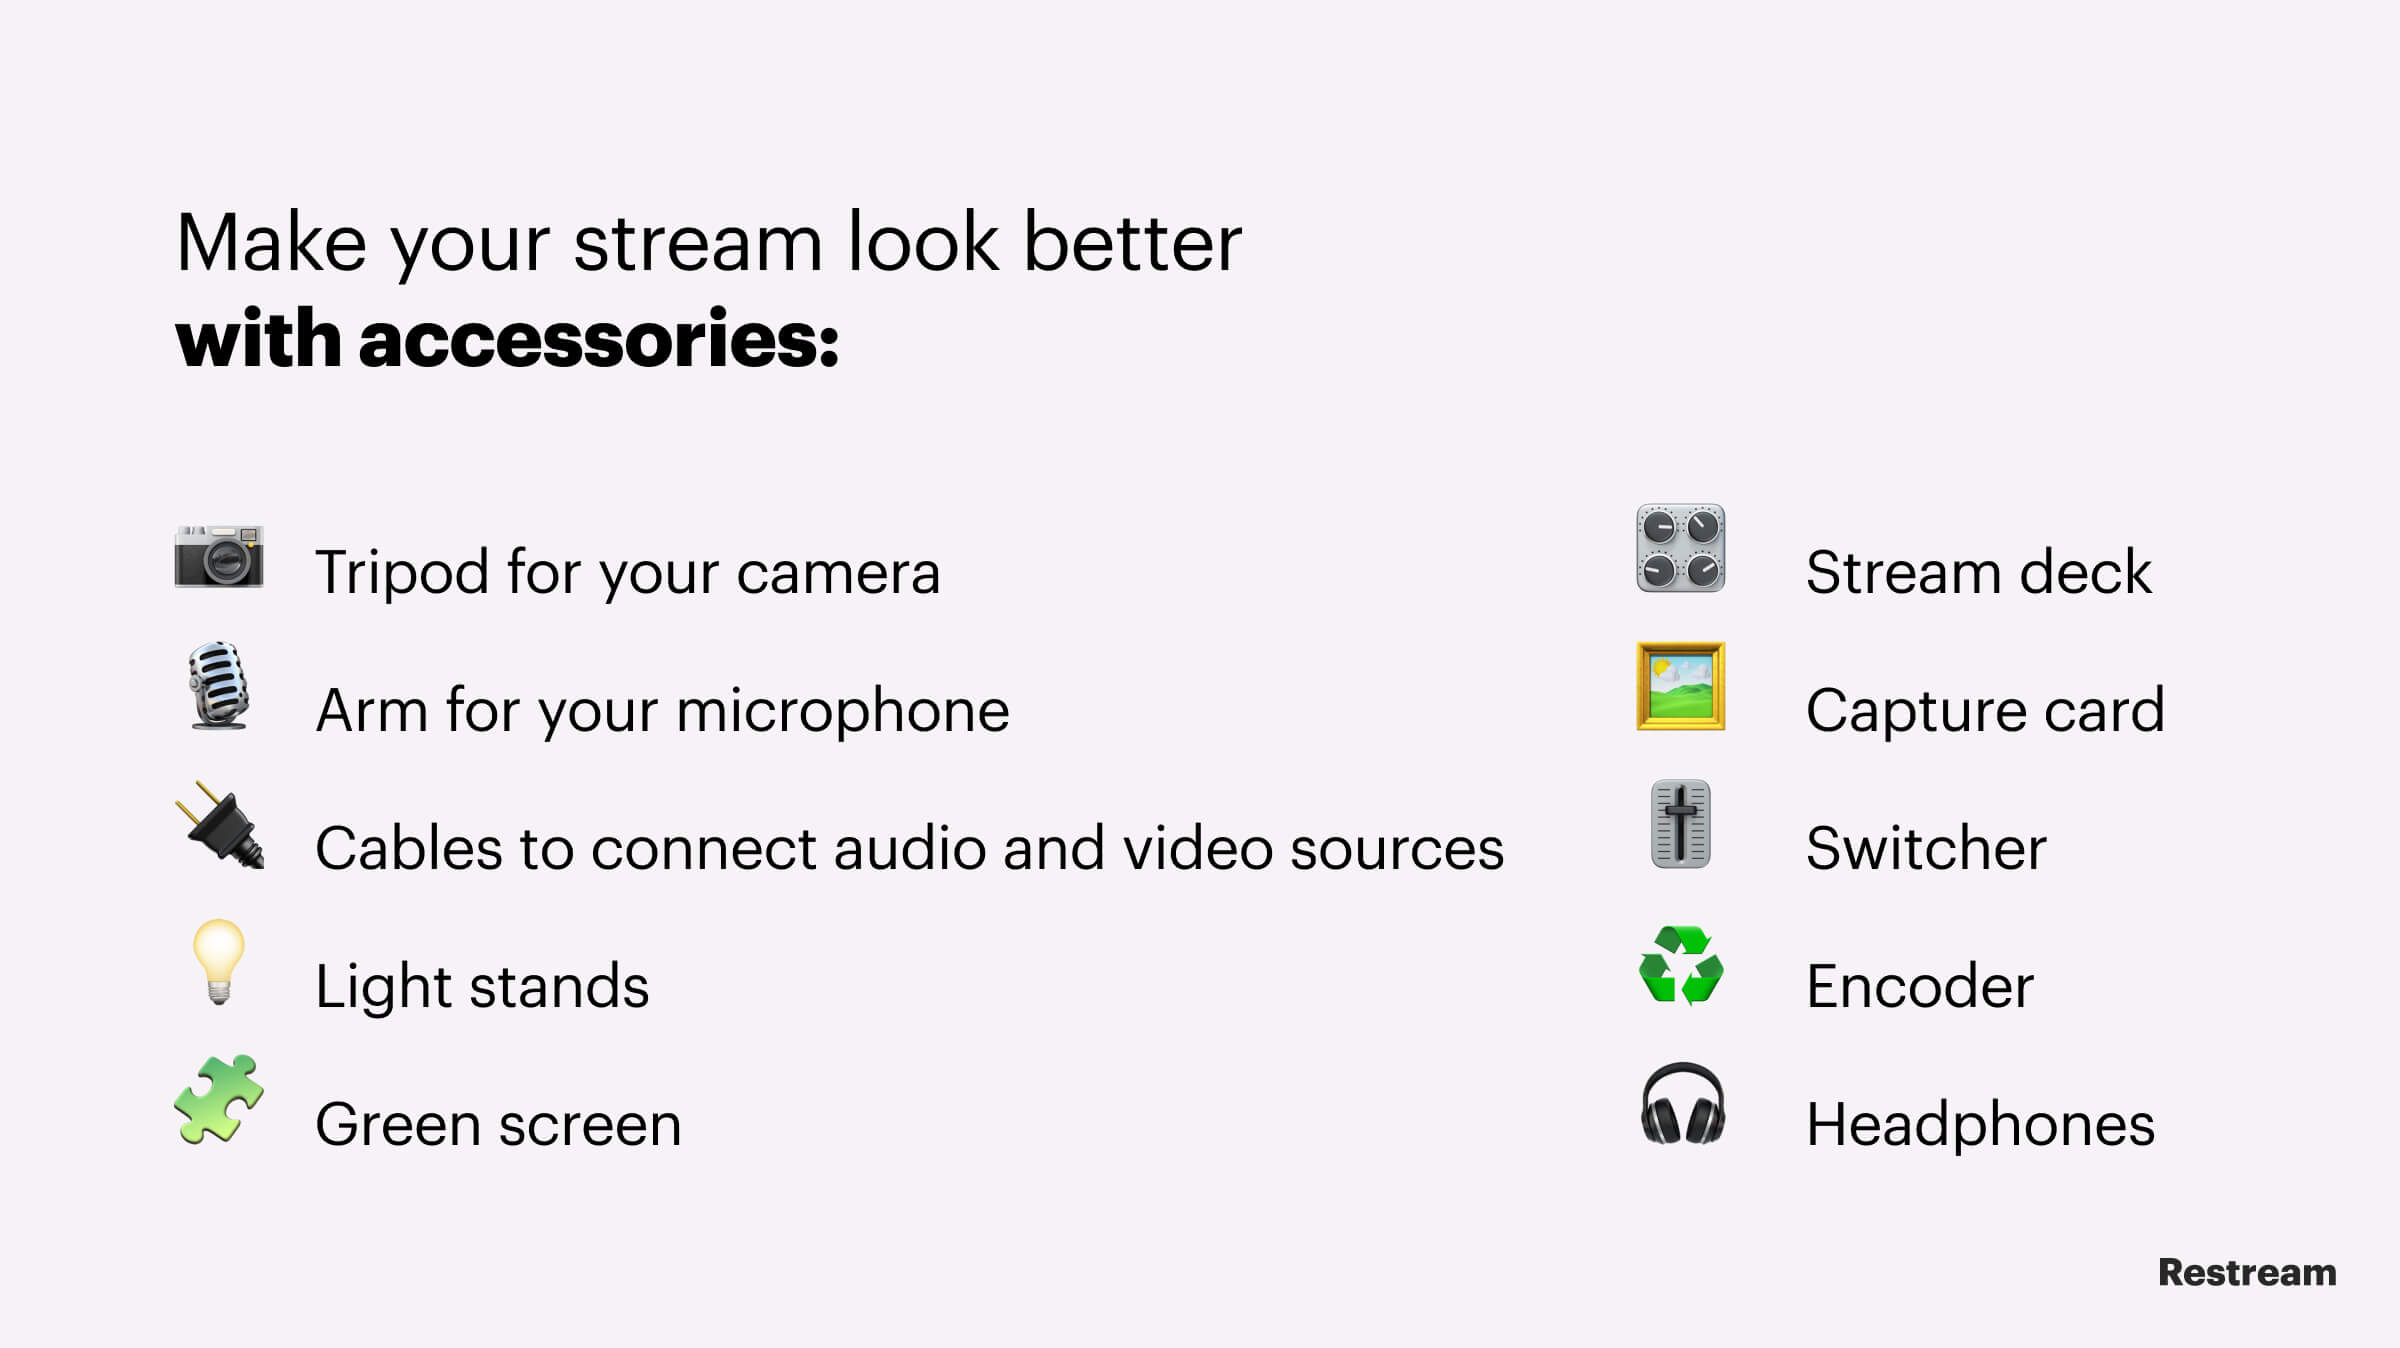 Accessories to make your stream look better